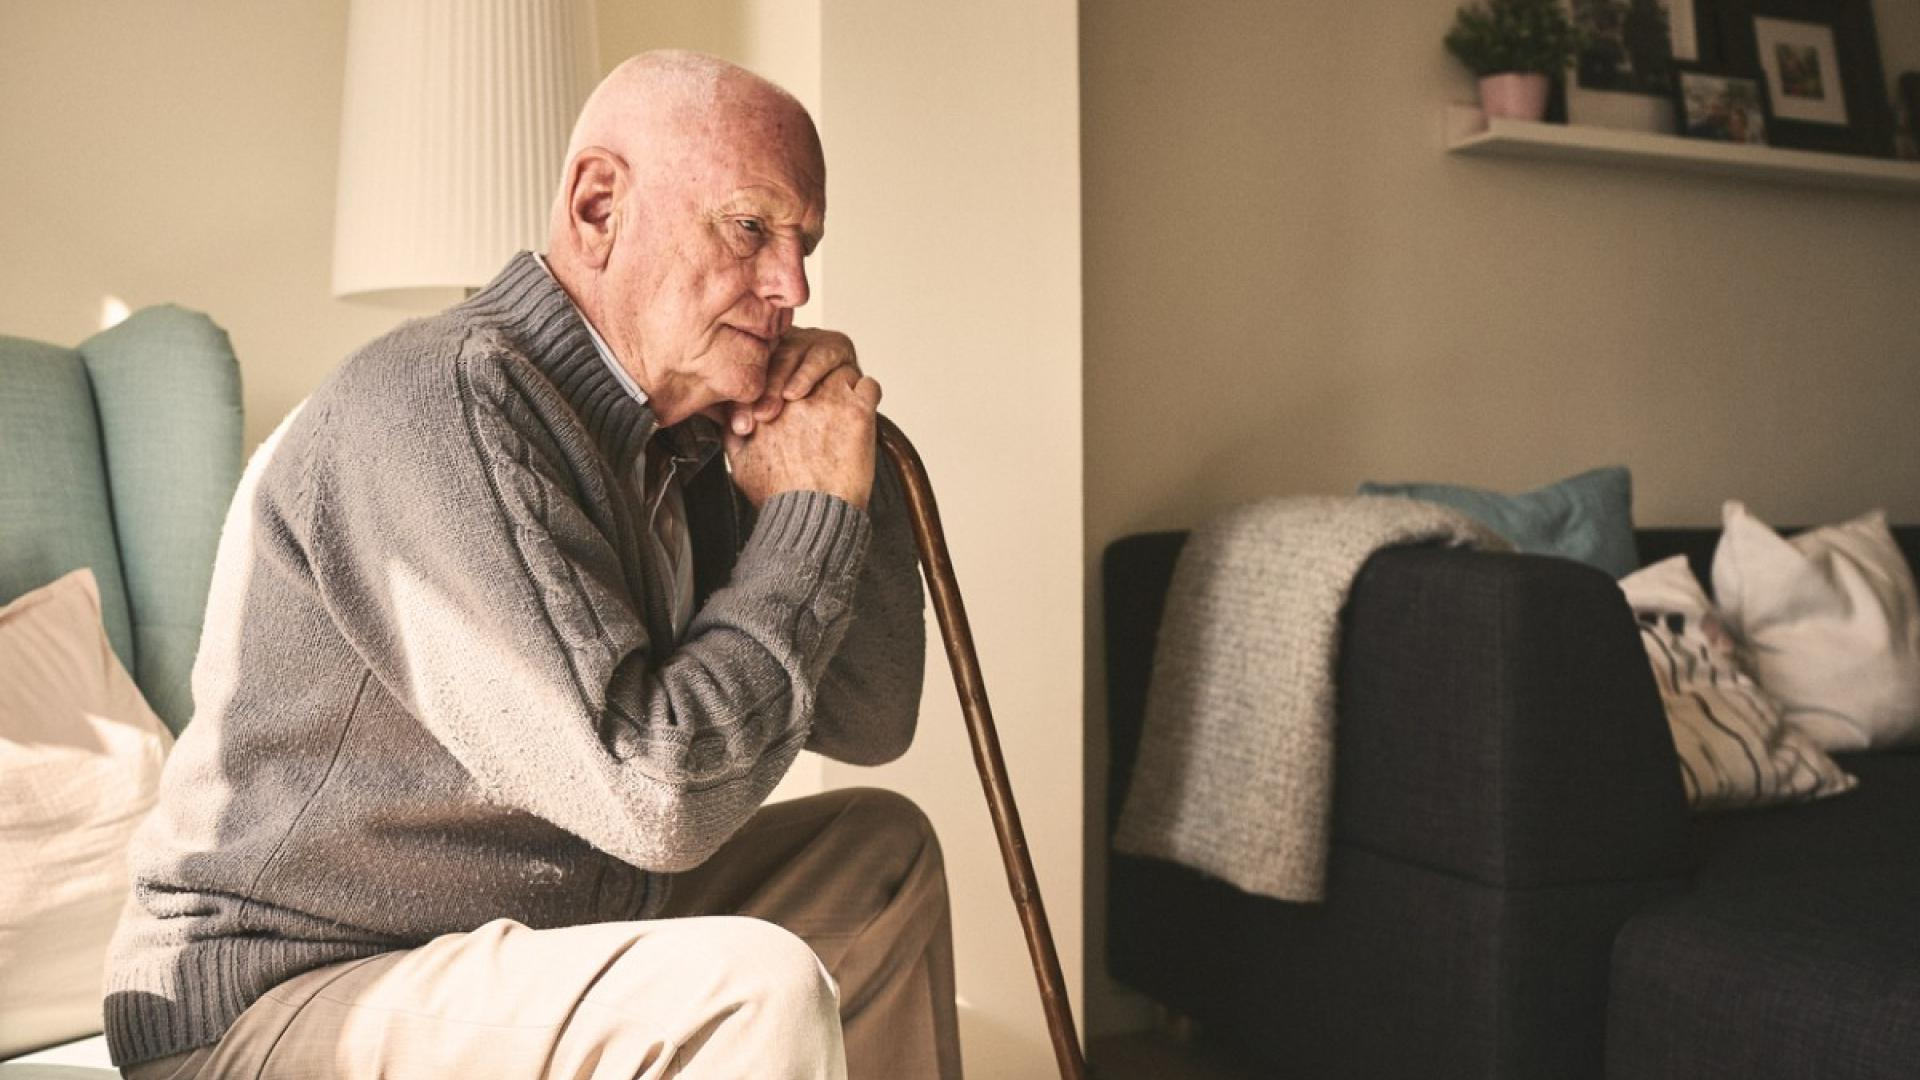 Depression is harder to overcome in old age